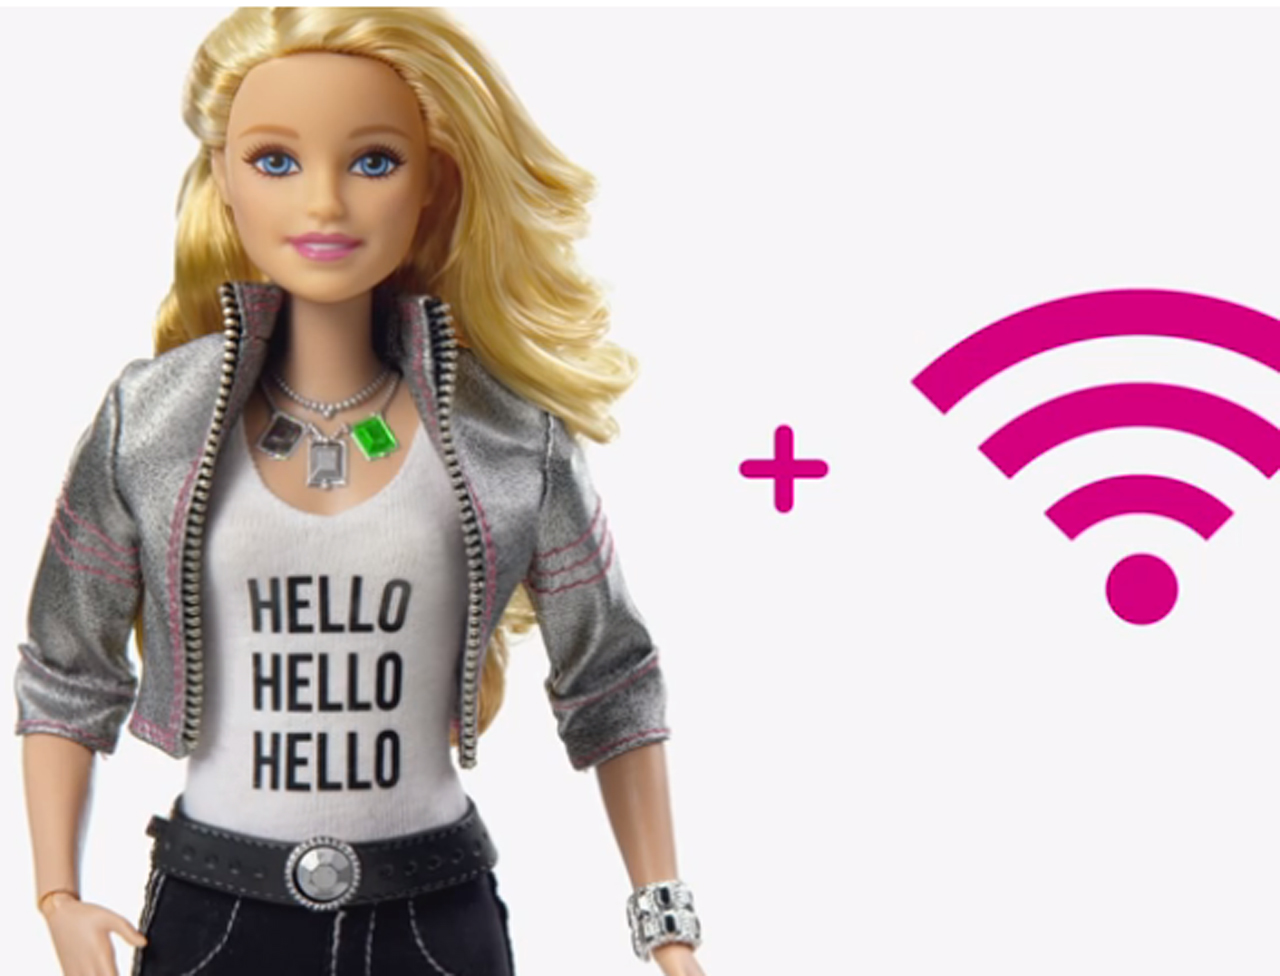 Barbie with wifi wasn't a good idea after all